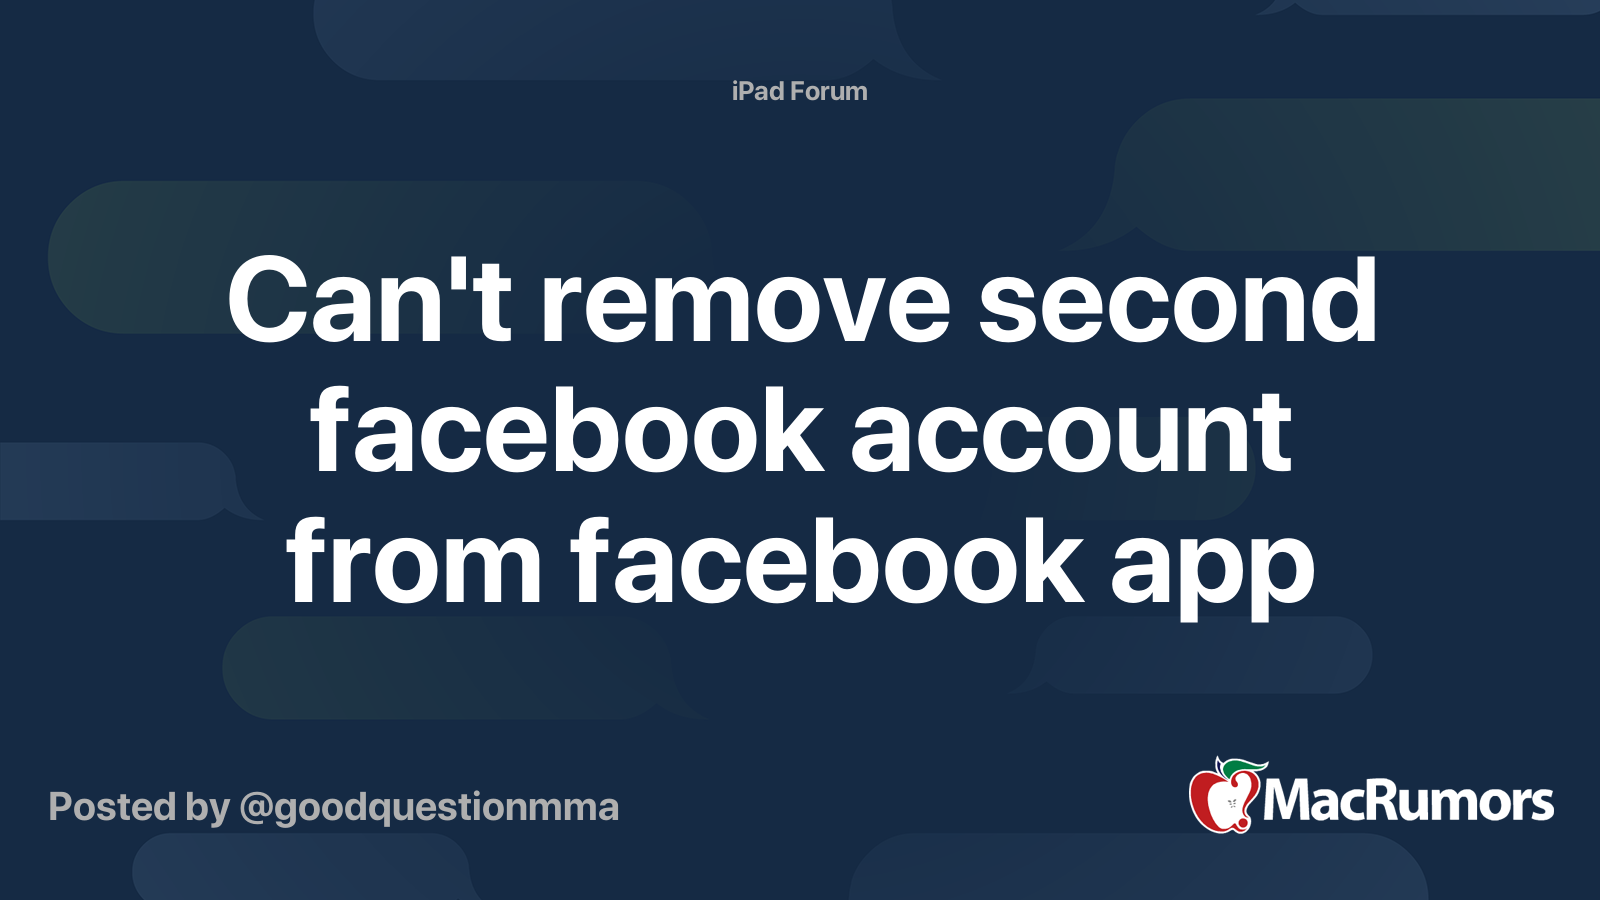 Cant remove second facebook account from facebook app